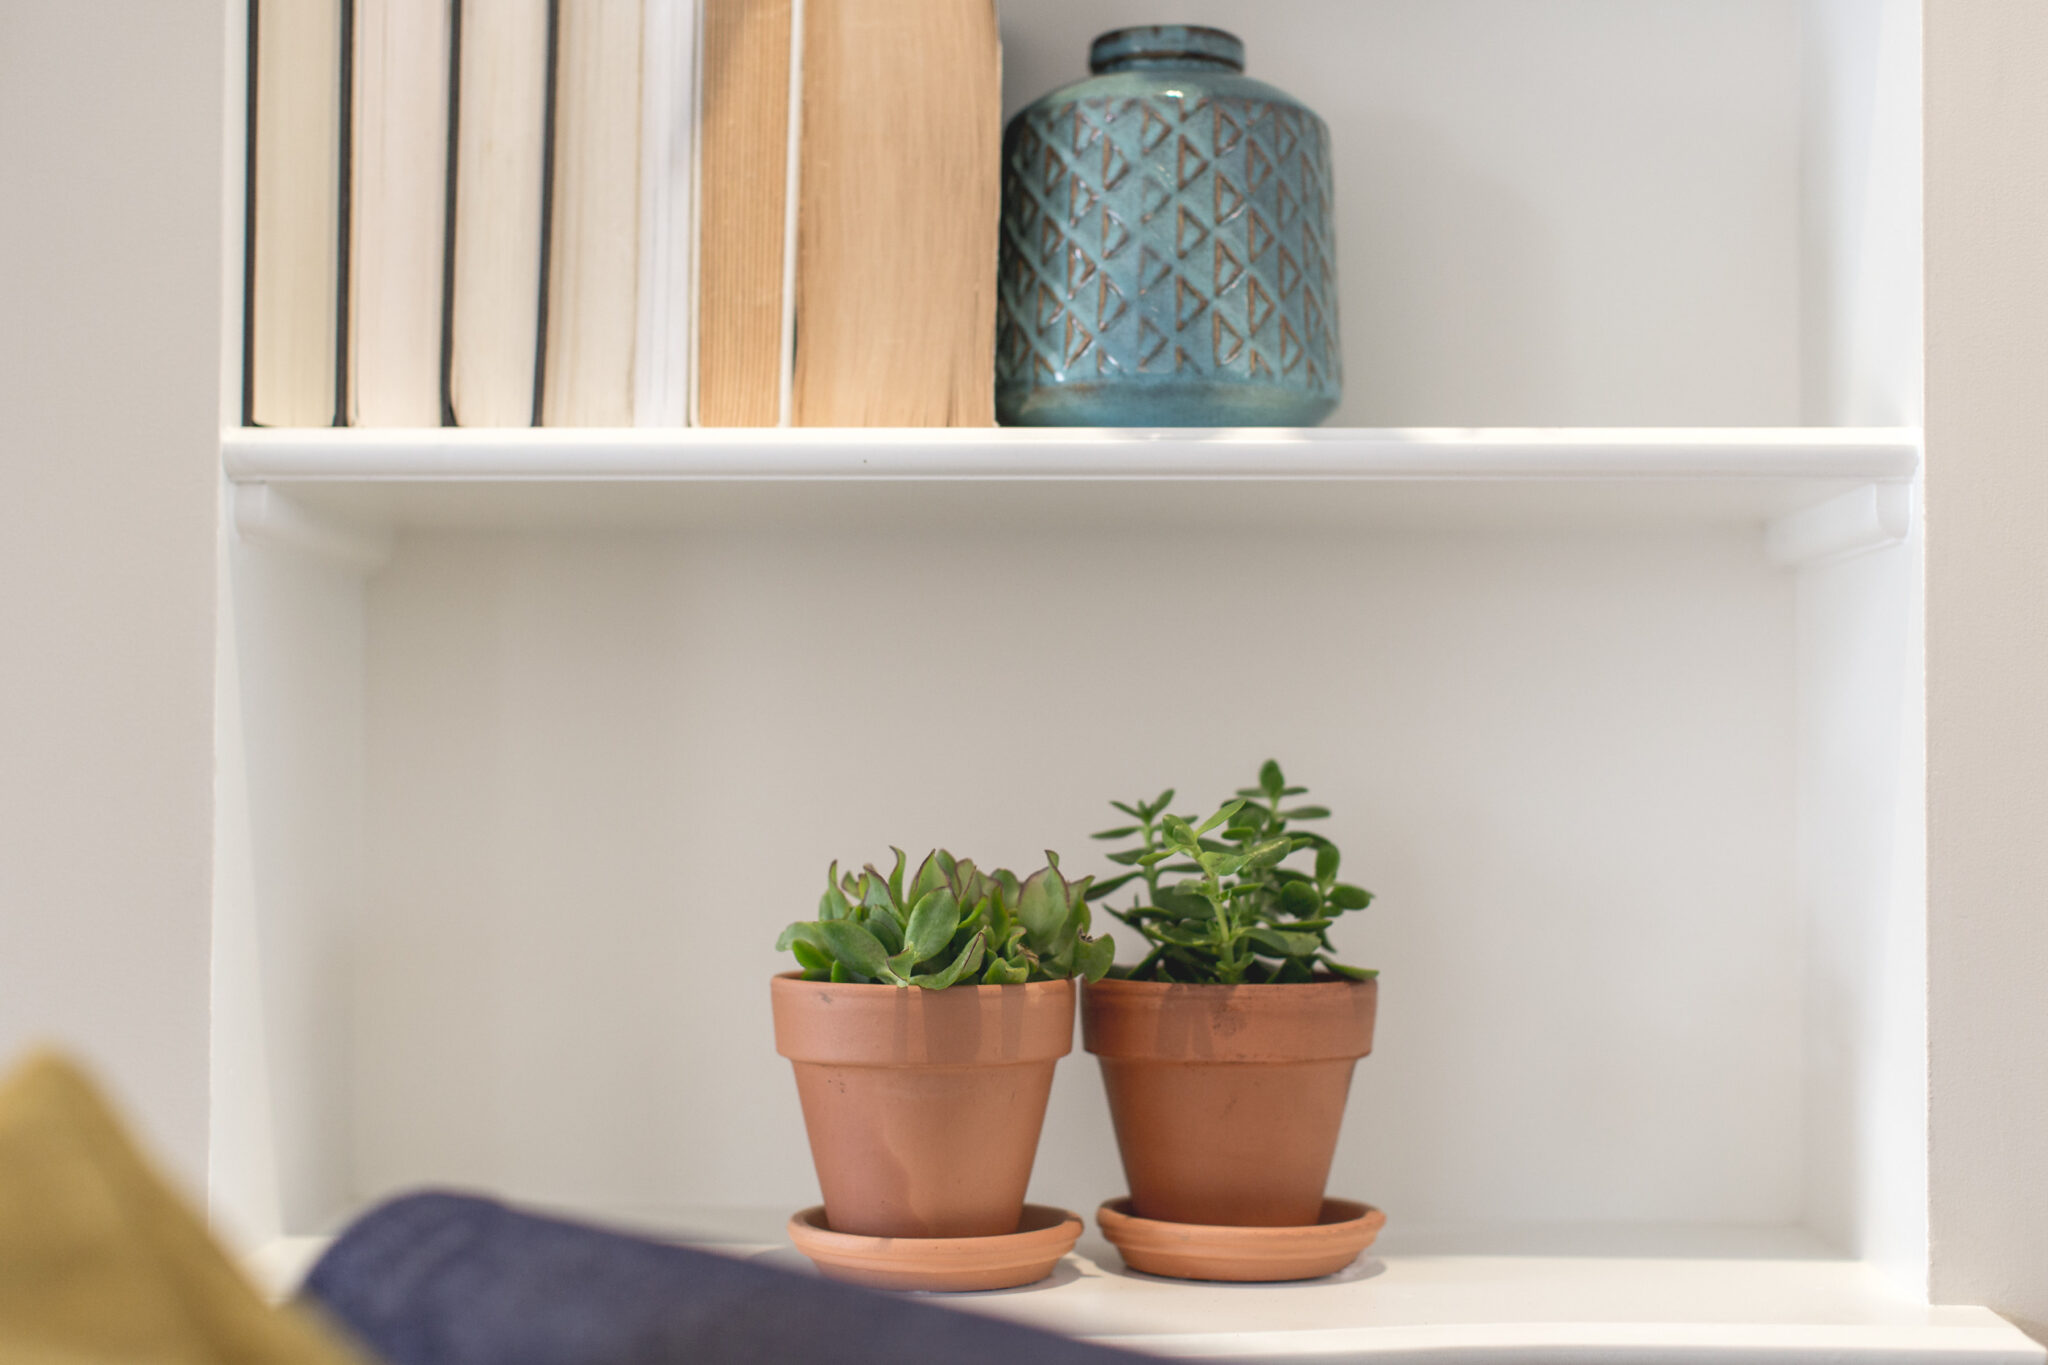 terra cotta pots and books with binding backwards